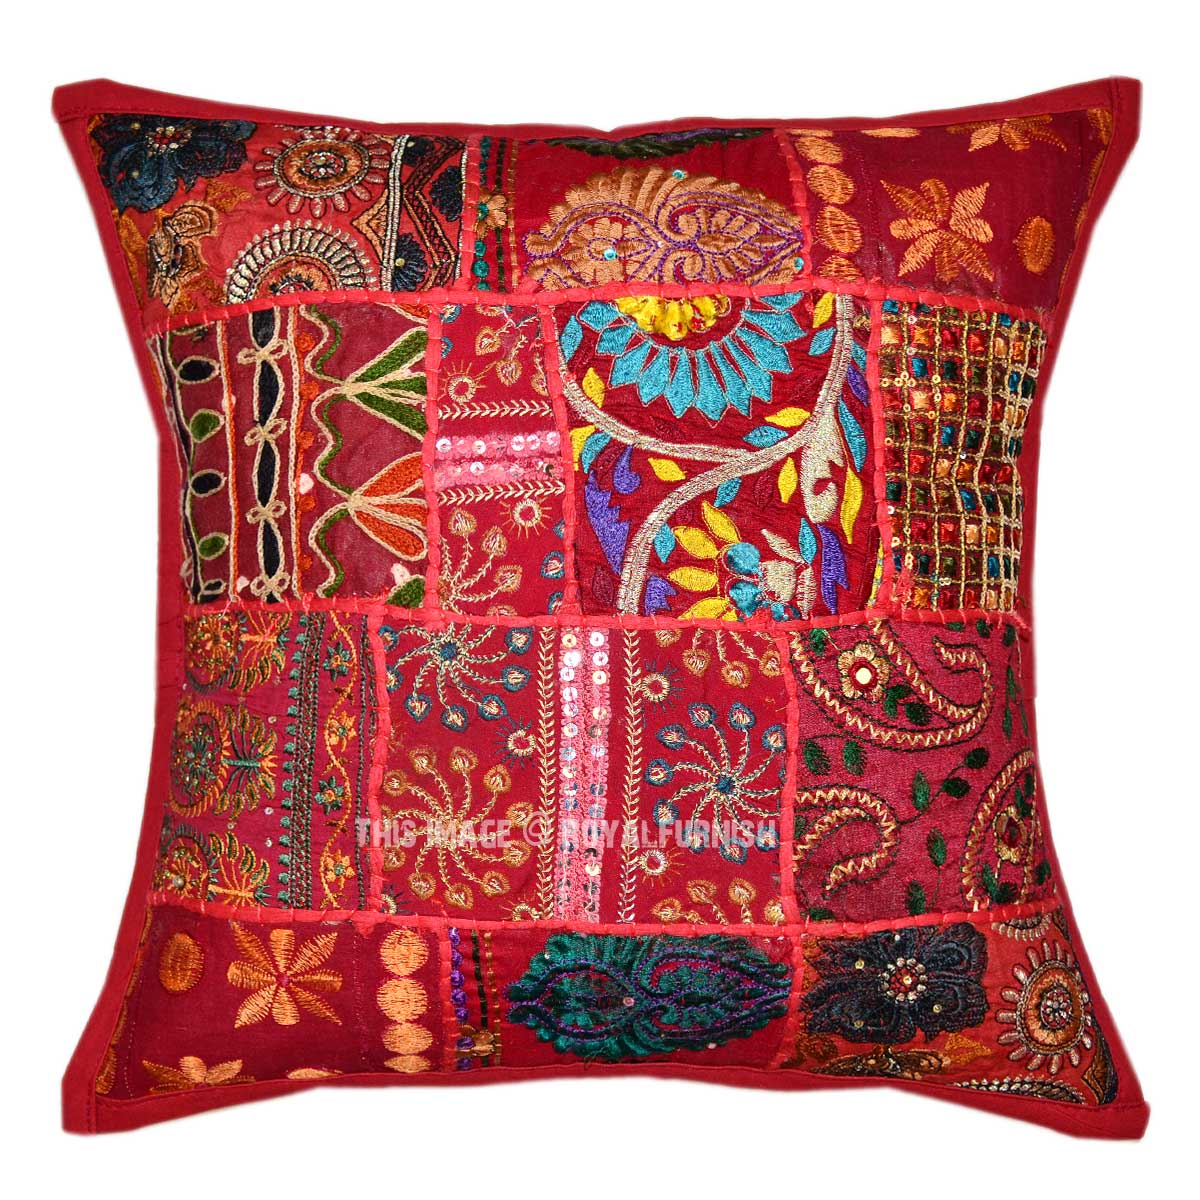 Decorative Boho Accent Unique Pretty Patchwork 16X16 Square Throw Pillow Cover - RoyalFurnish.com